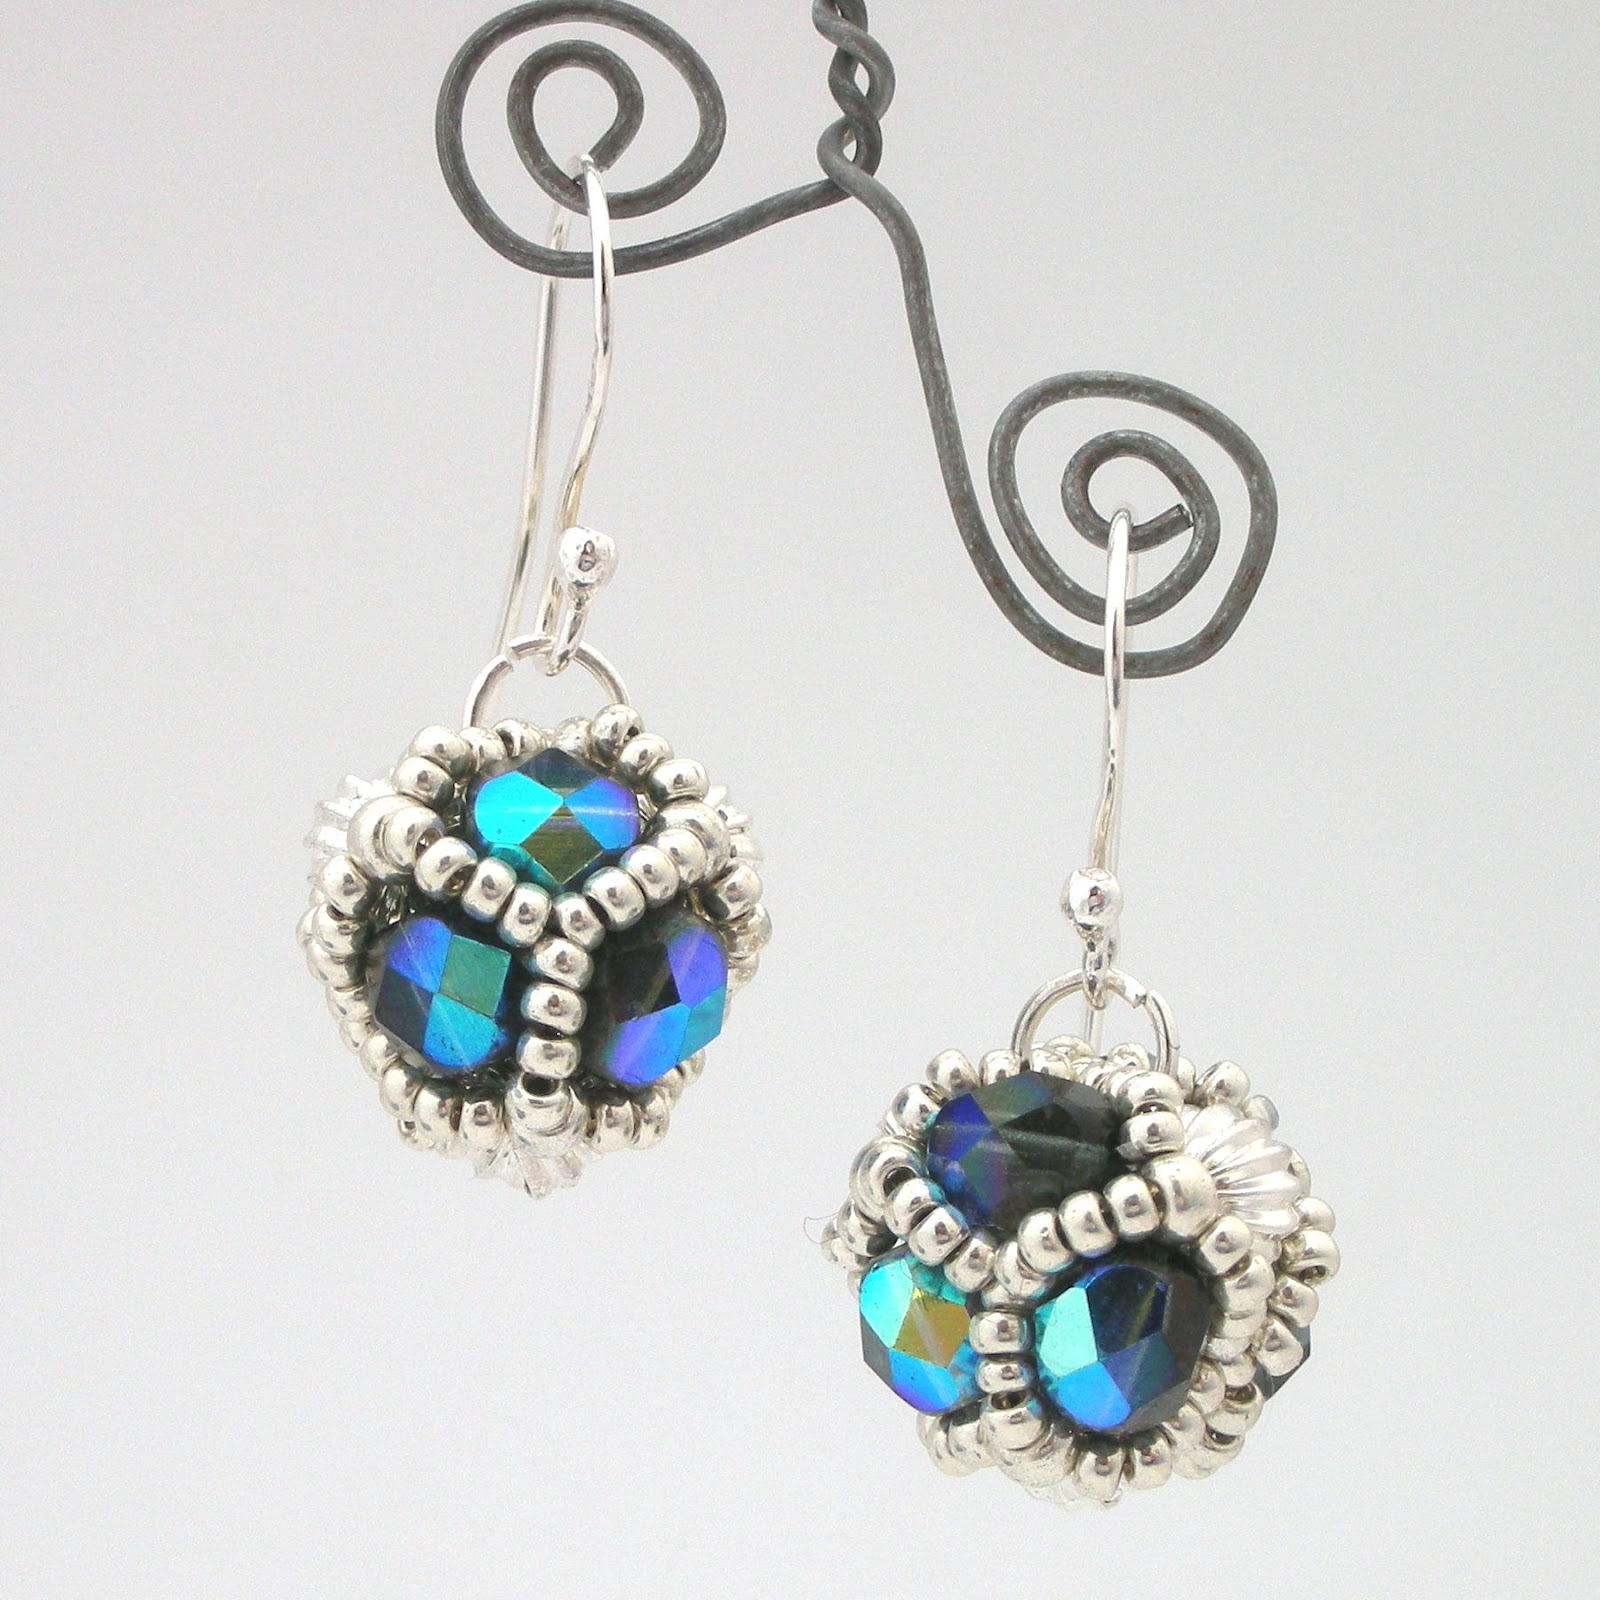 jewellery products hawaii beaded kamuela earrings ocean bella turquoise